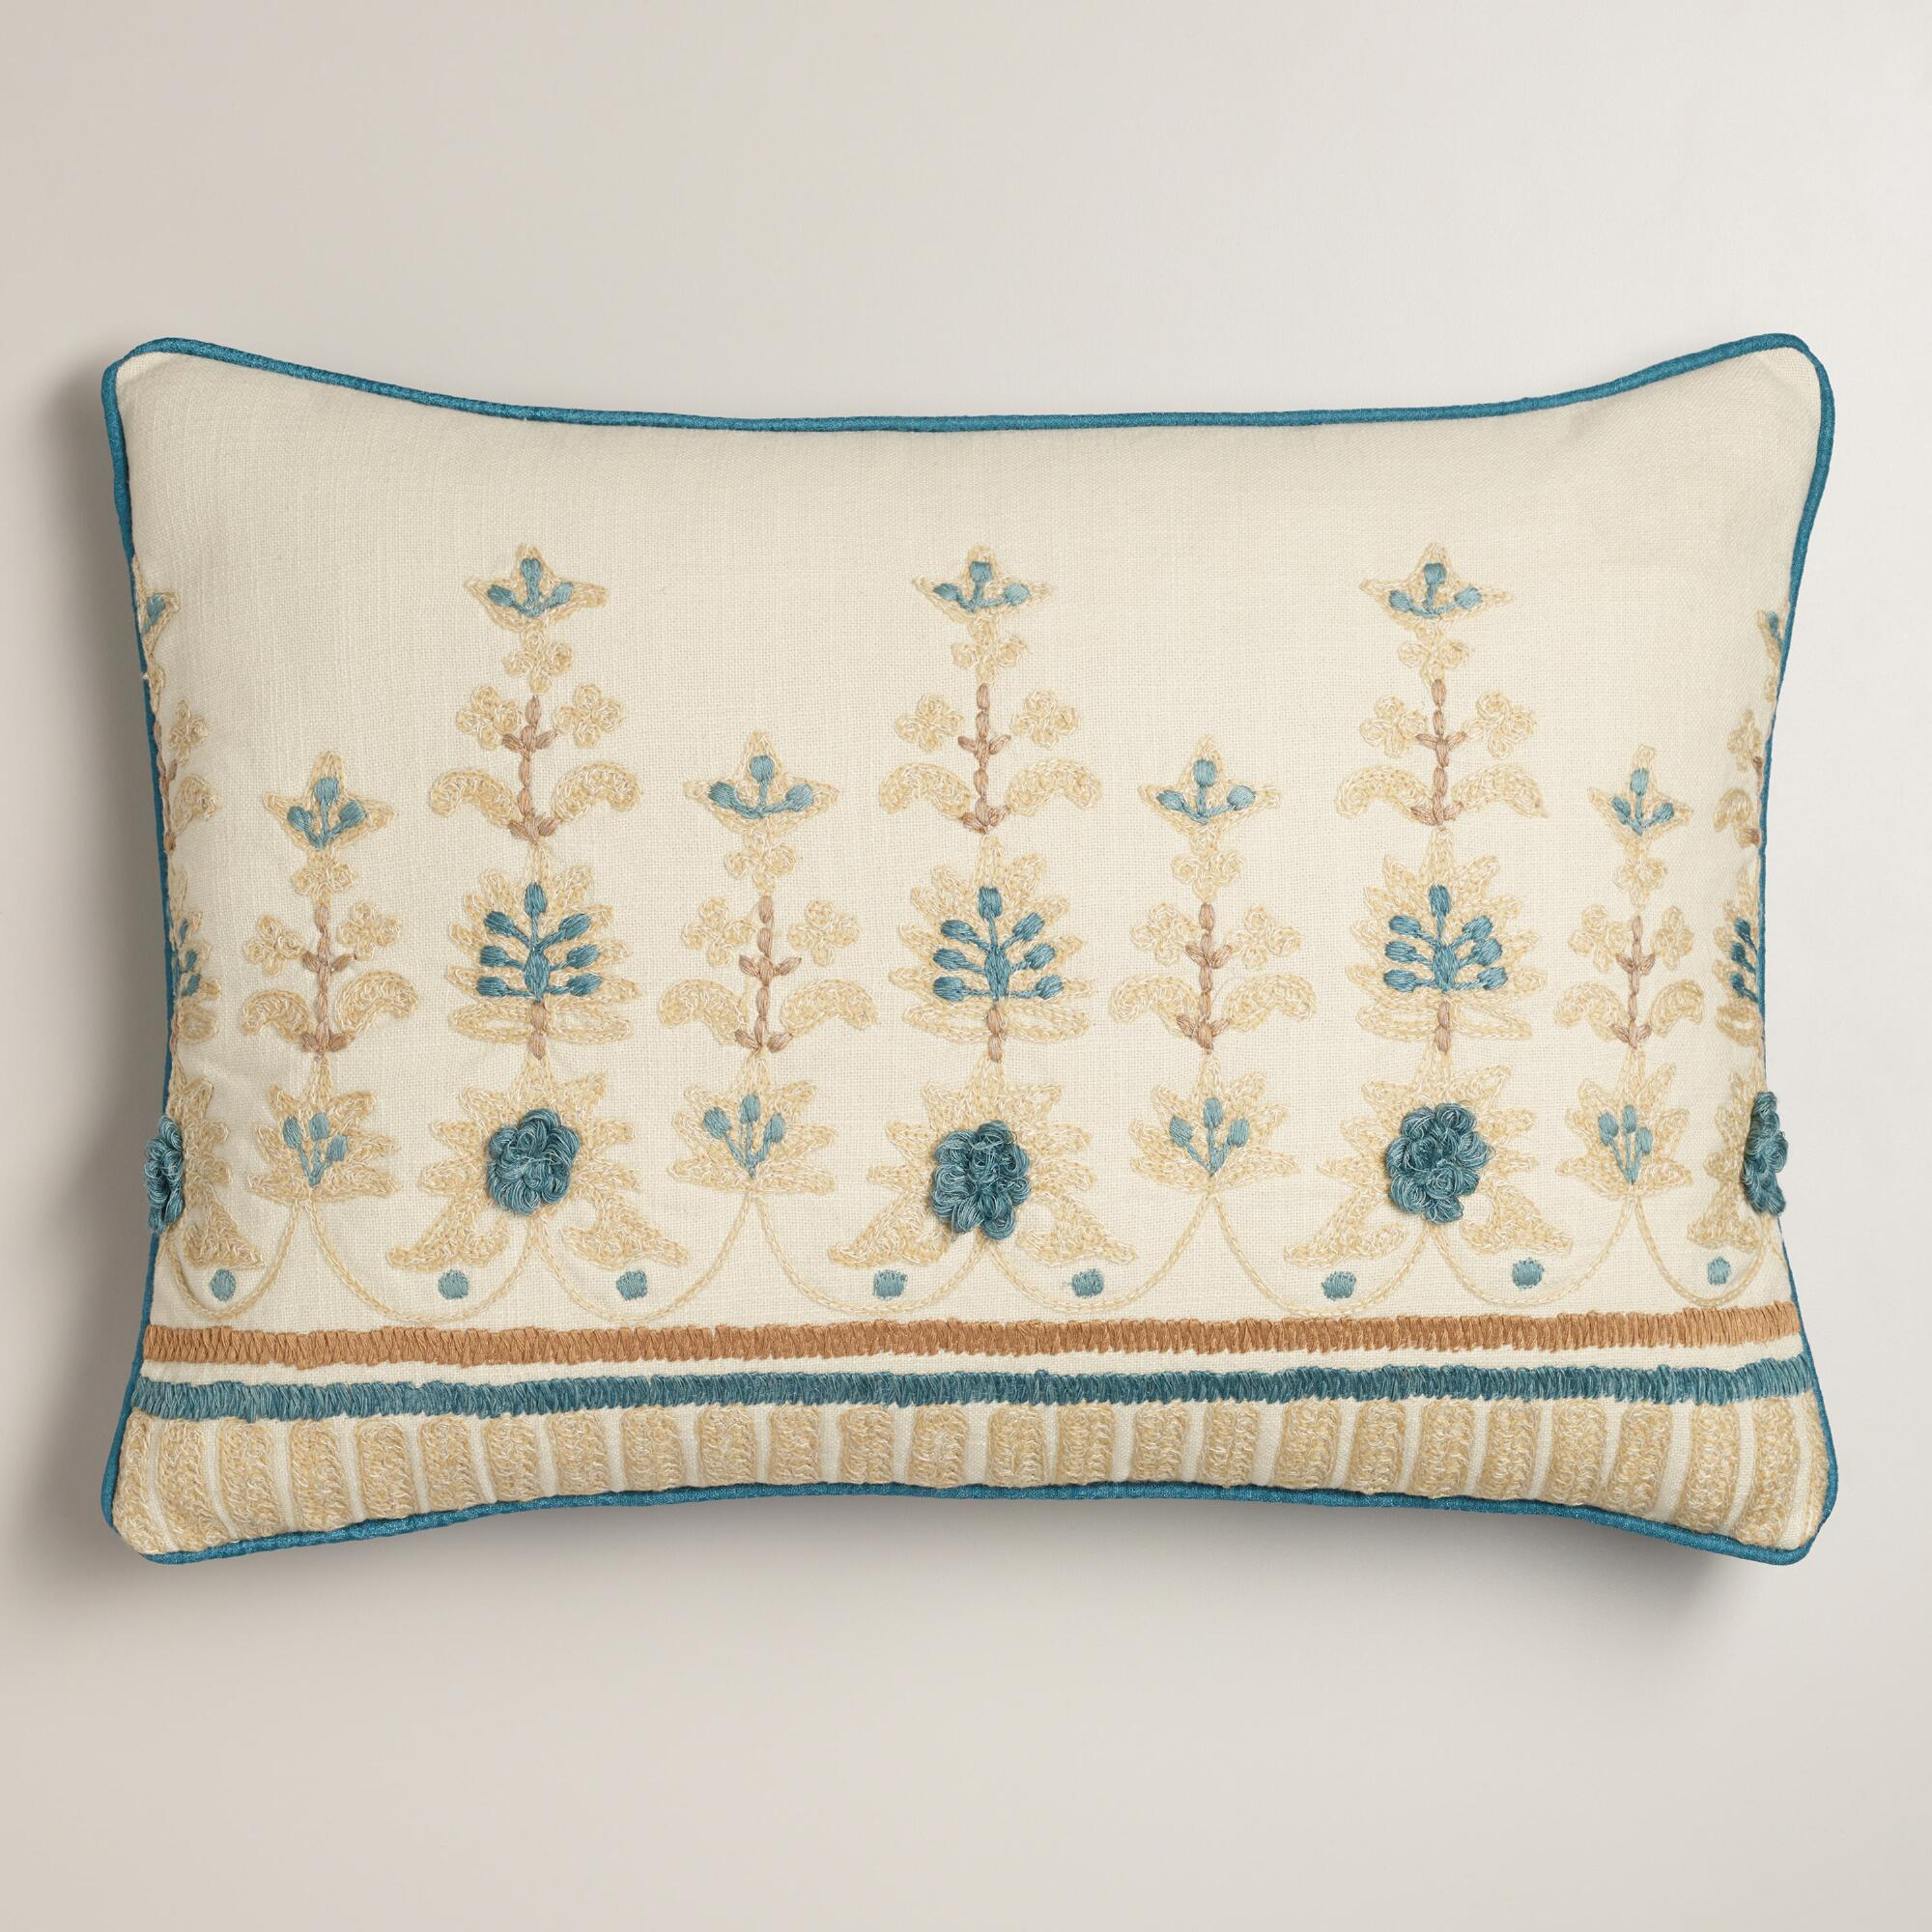 Blue and Tan Embroidered Lumbar Pillow | World Market